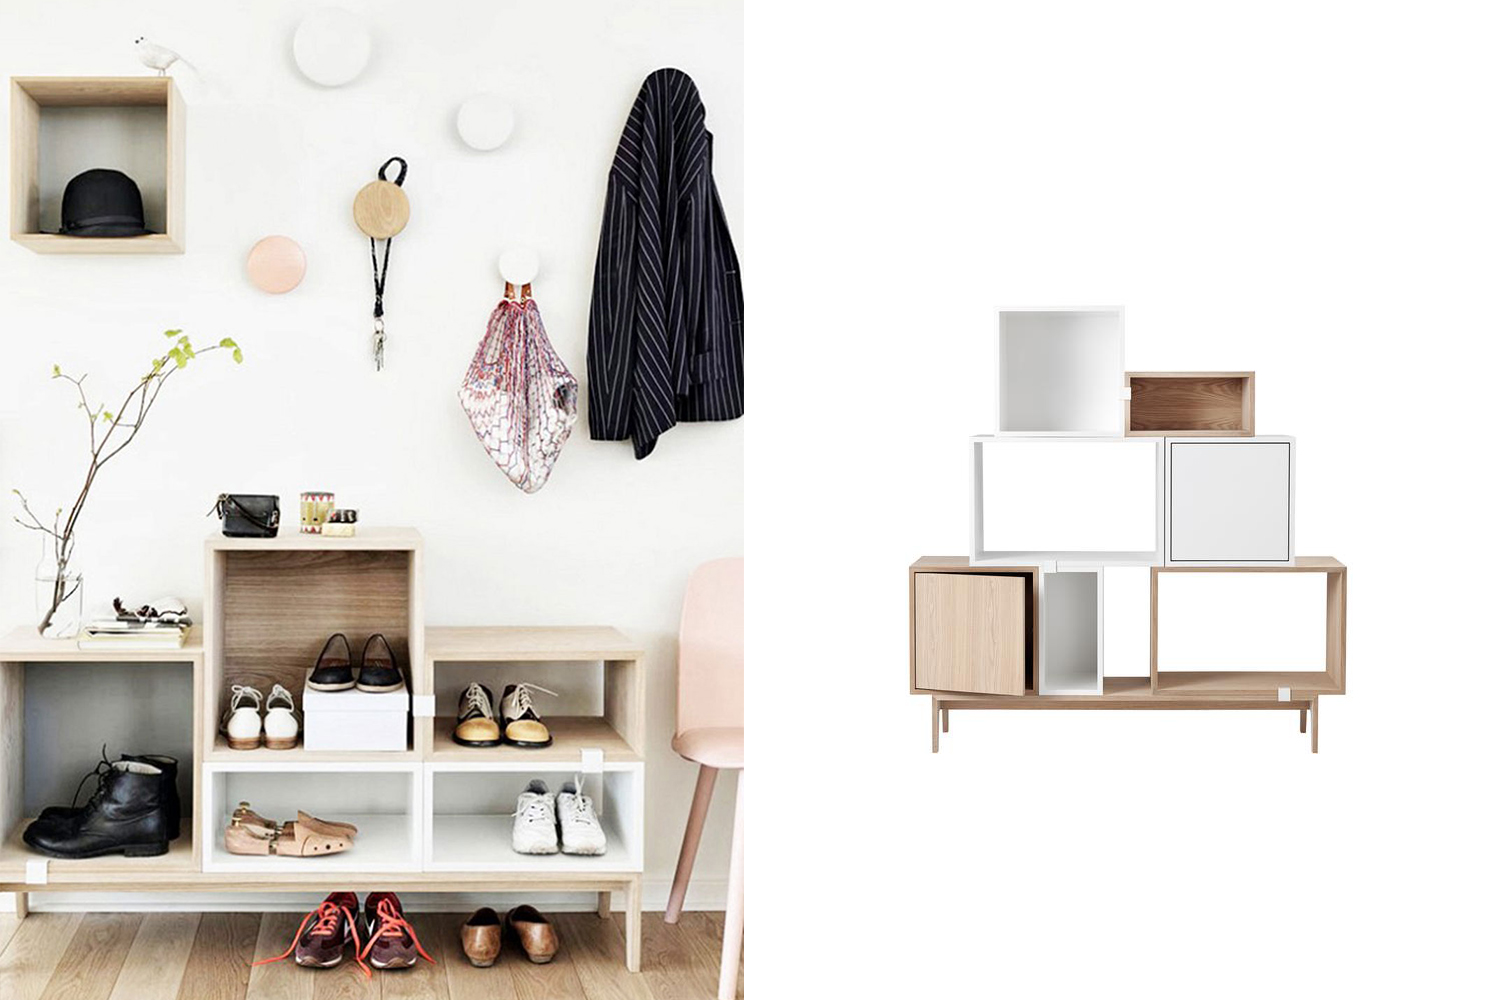 Shoe storage // cubbies // Organized closets // closet organizing // how to organize your shoes // shoe storage ideas // sleek home design ideas // shoe storage // entryway storage // www.SimplySpaced.com